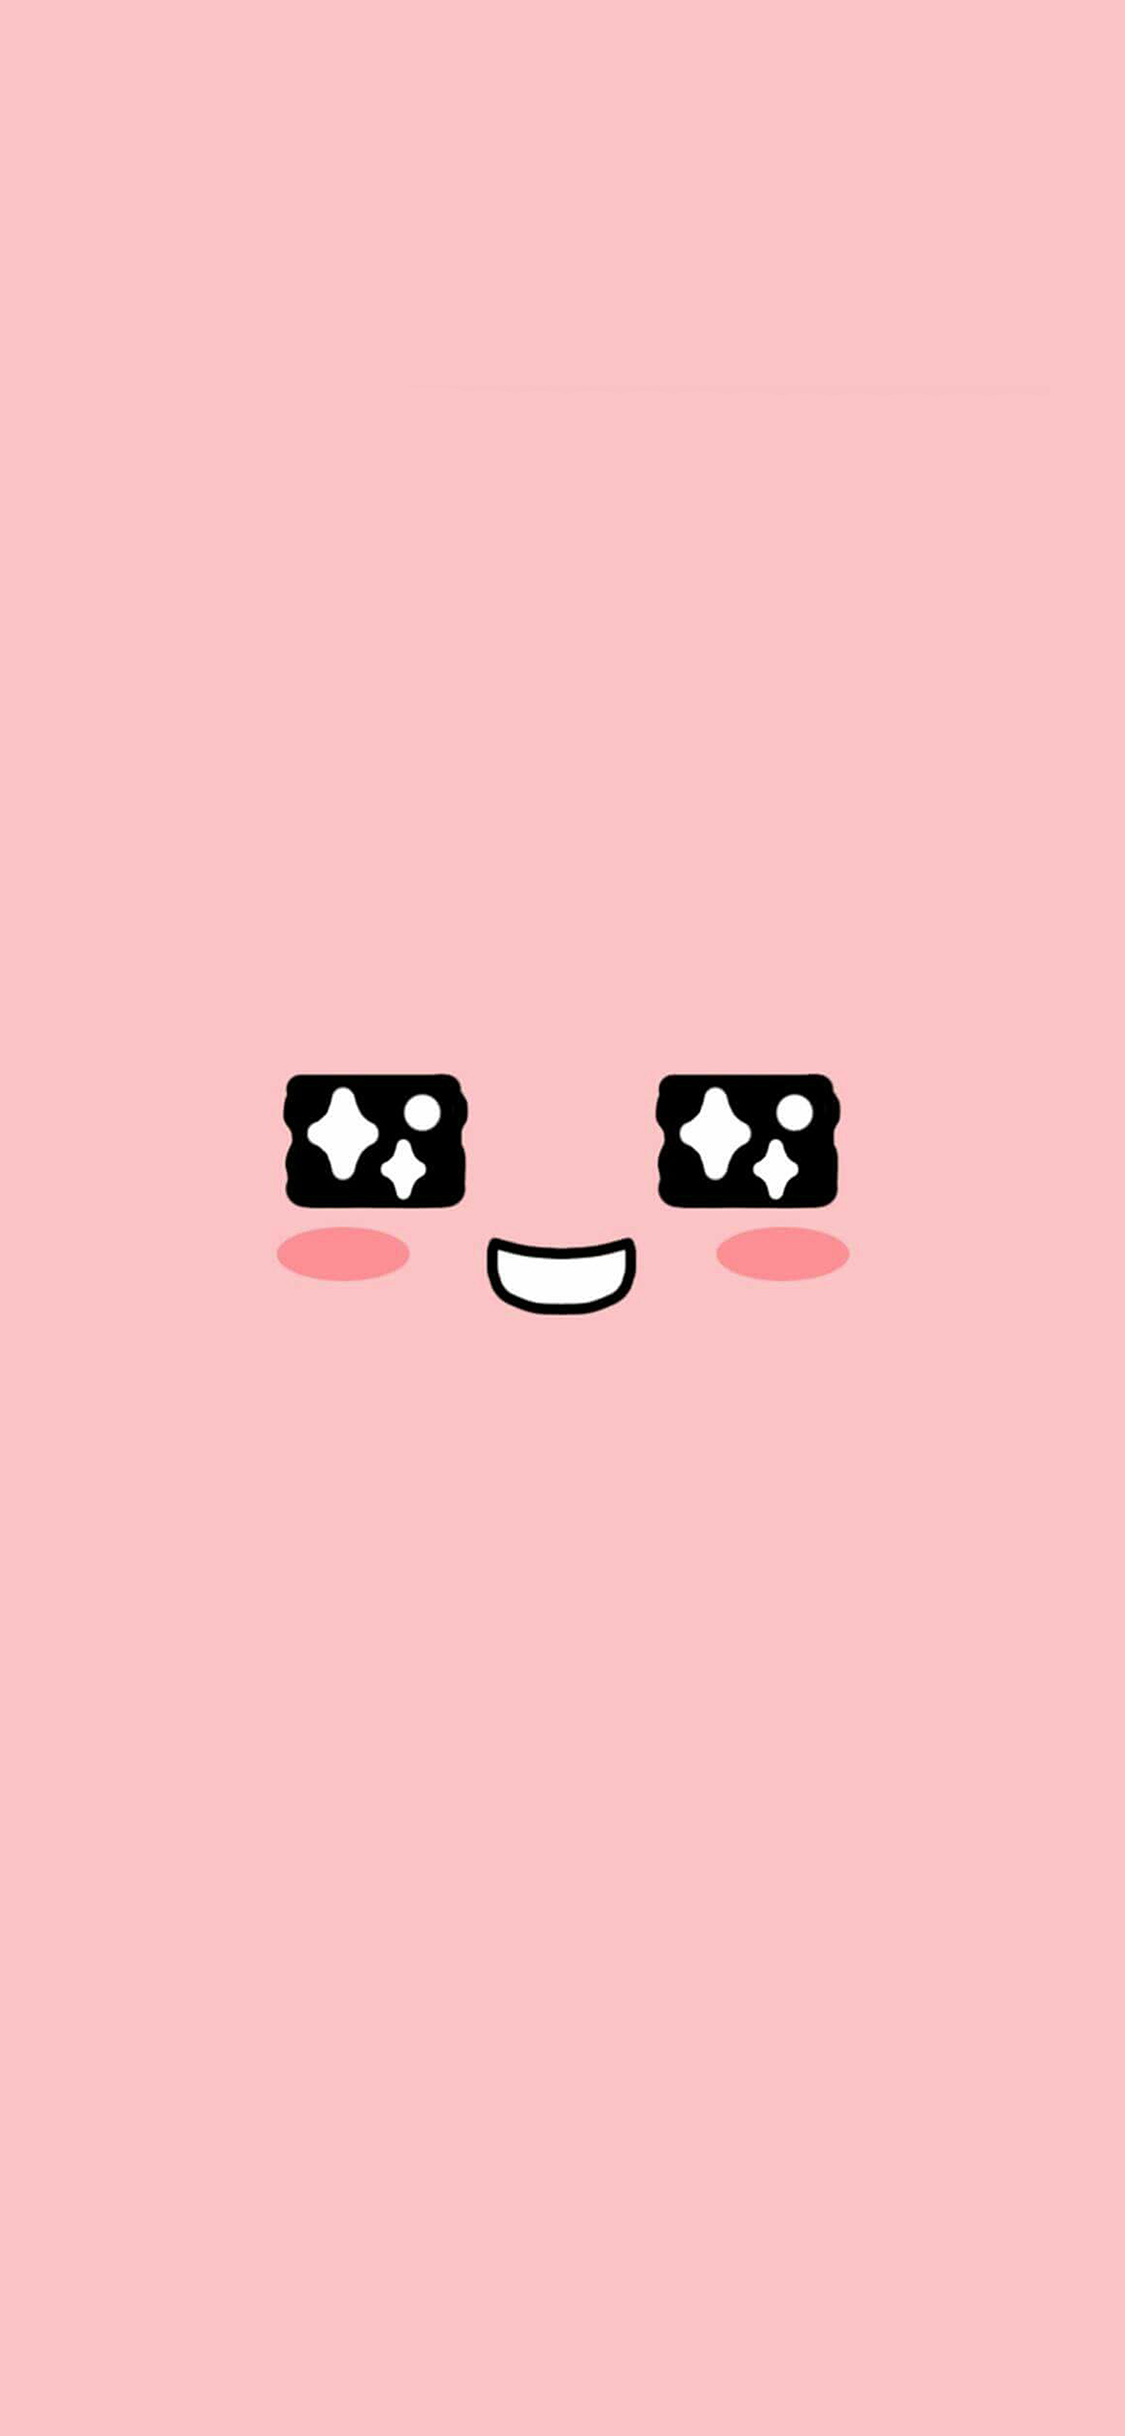 Minimalist Cute Desktop Wallpaper Bb55 Cute Kakao Face Pink Illustration Art Wallpaper